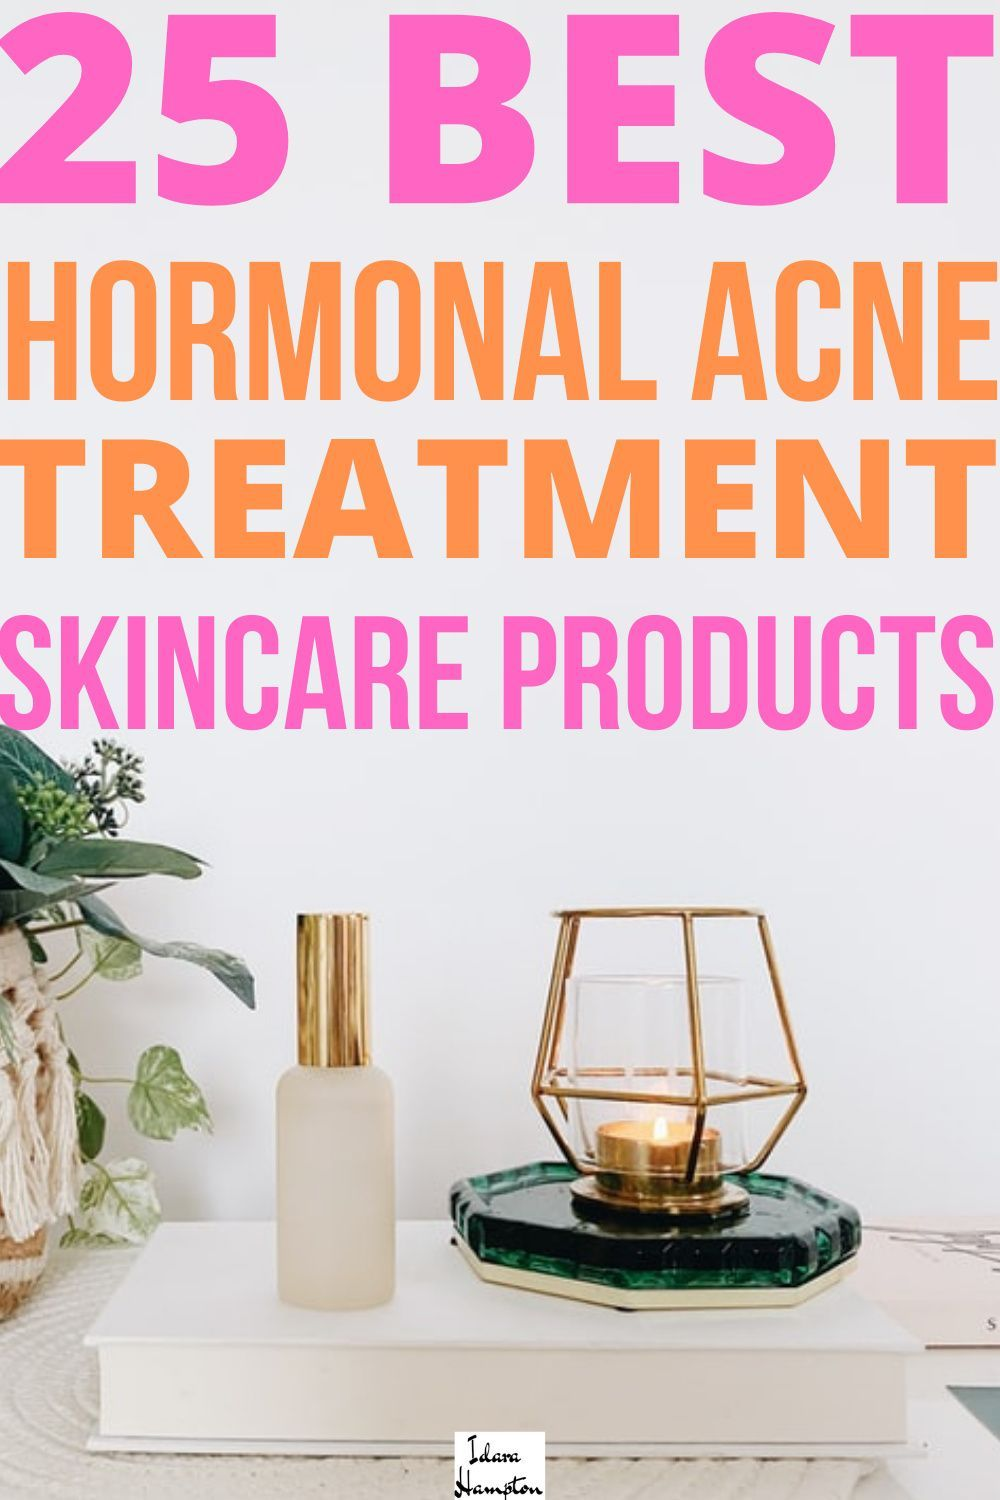 The best hormonal acne treatment will include a skincare routine that clears acne without irritating your skin. Here are the 25 best skincare products for hormonal acne. #hormonalacnetreatment #howtogetridofhormonalacne #hormonalacneskincareproducts